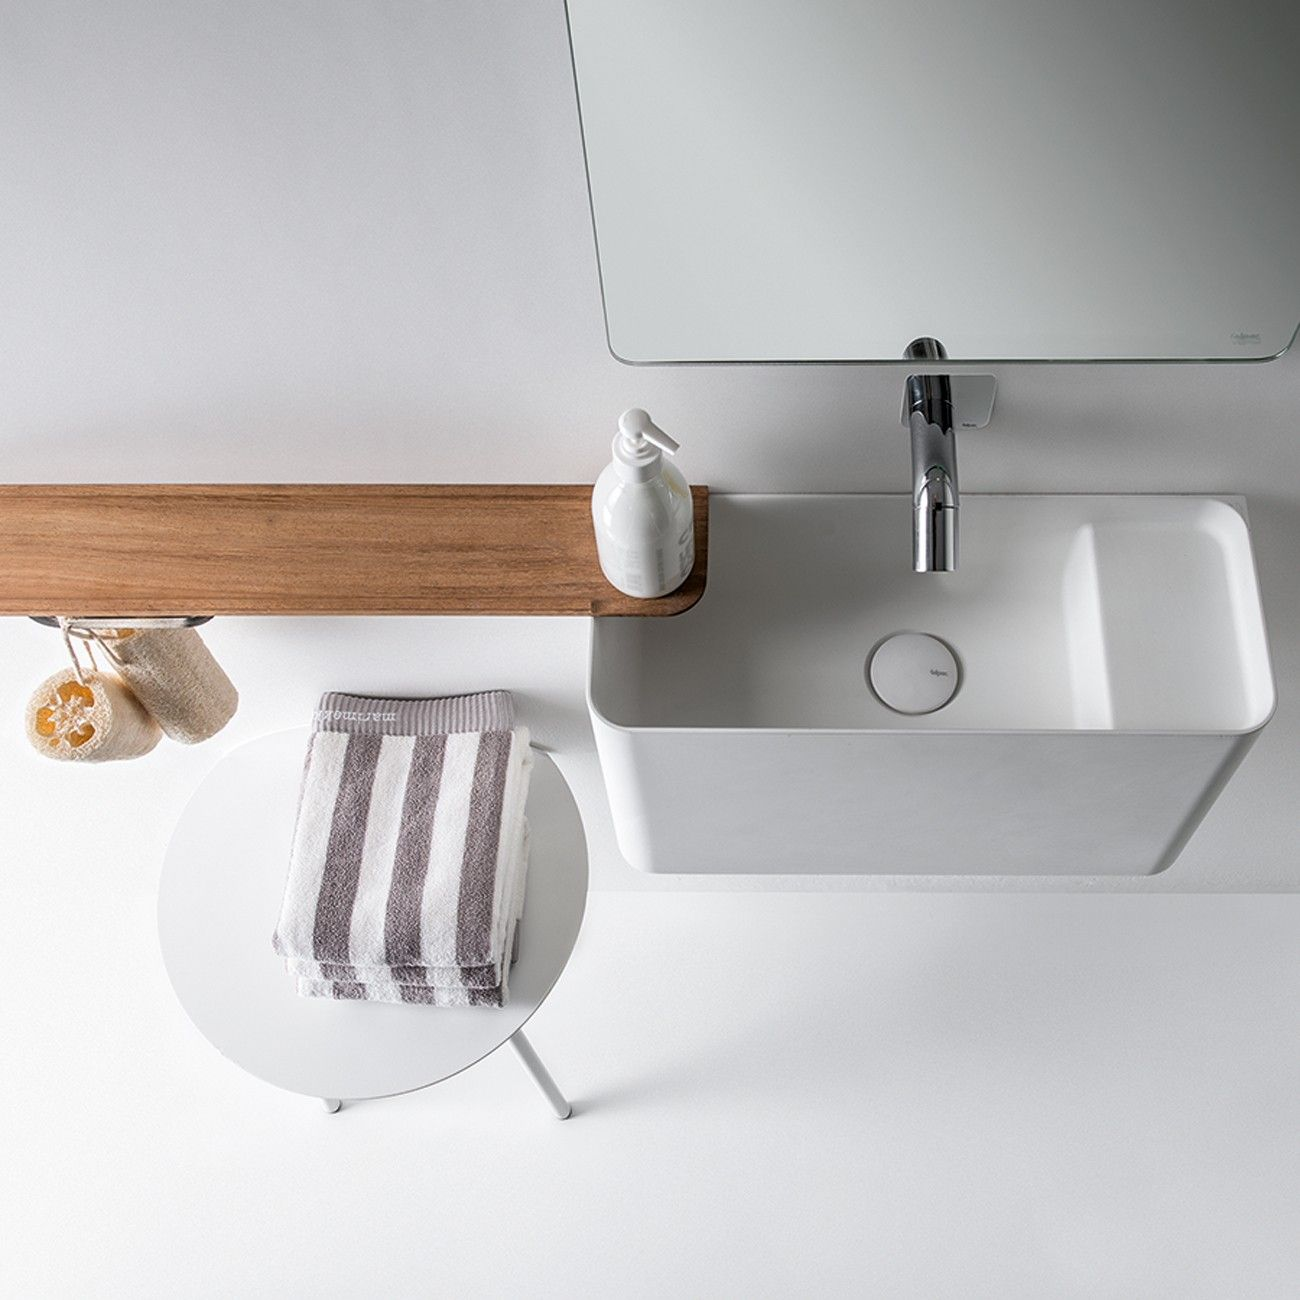 Cibo uber 1200 wall hung vanity from reece - The Falper Lavamani Wall Hung 300 Rectangular Washbasin Is Designed Especially For Bathrooms Of Modest Dimensions